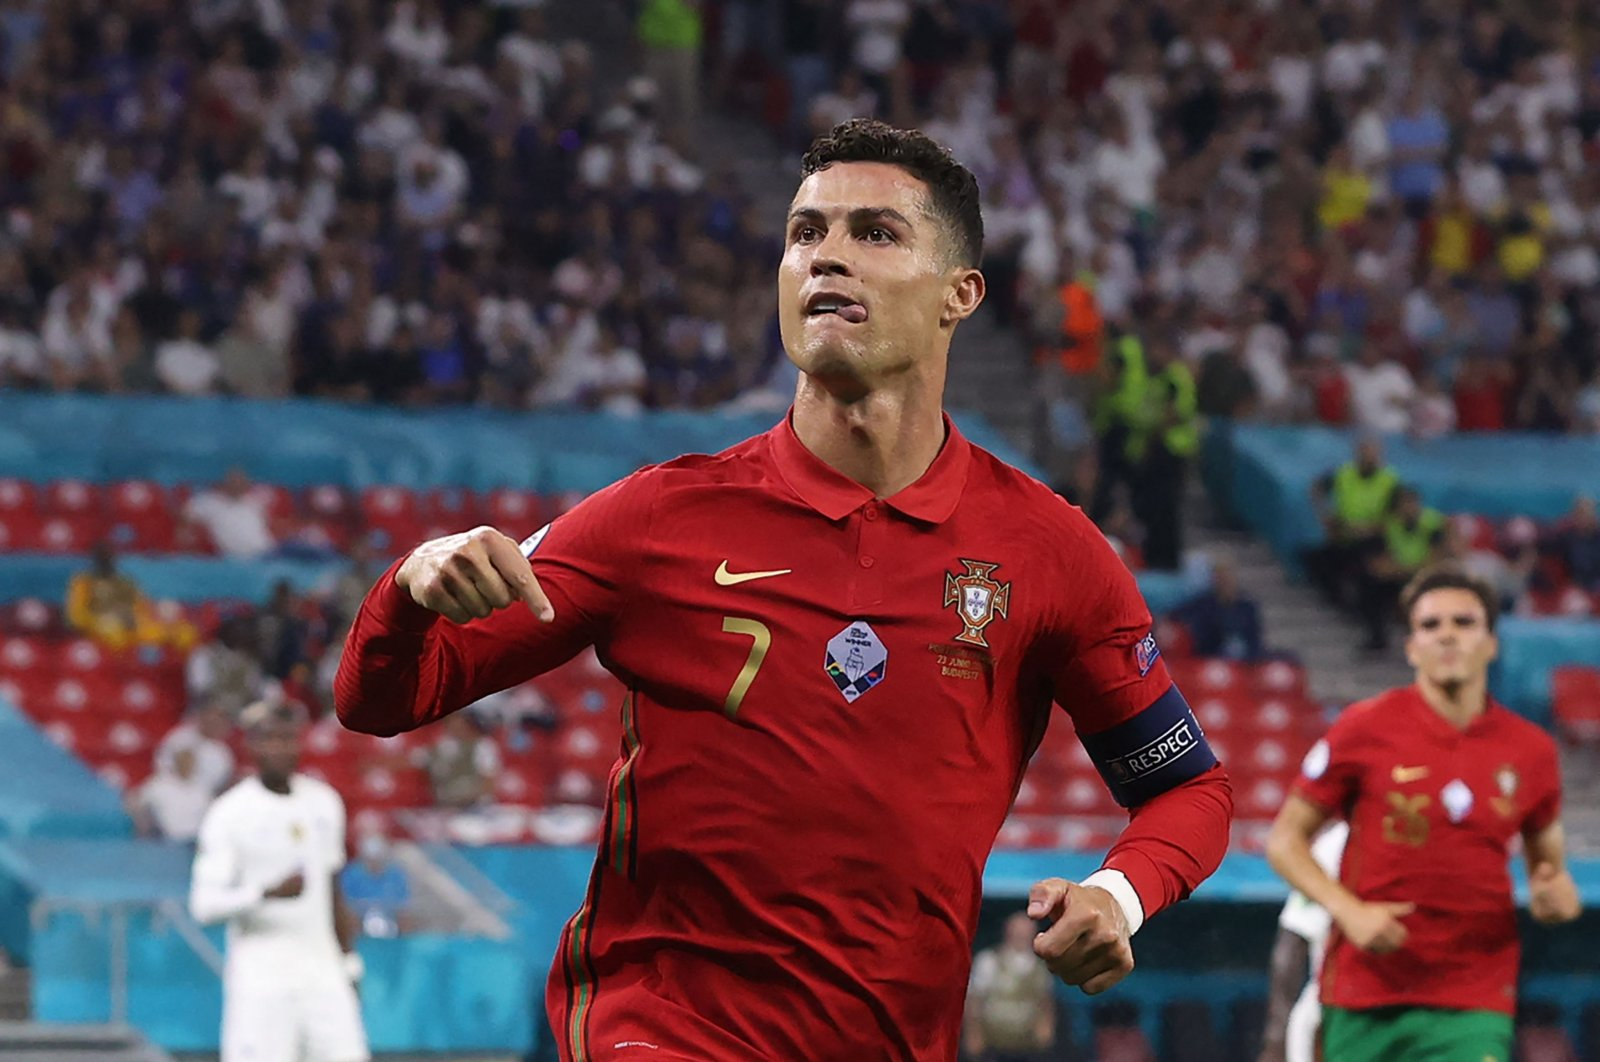 Portugal forward Cristiano Ronaldo celebrates after scoring a second penalty during the UEFA Euro 2020 Group F match against France at Puskas Arena, Budapest, Hungary, June 23, 2021. (AFP Photo)